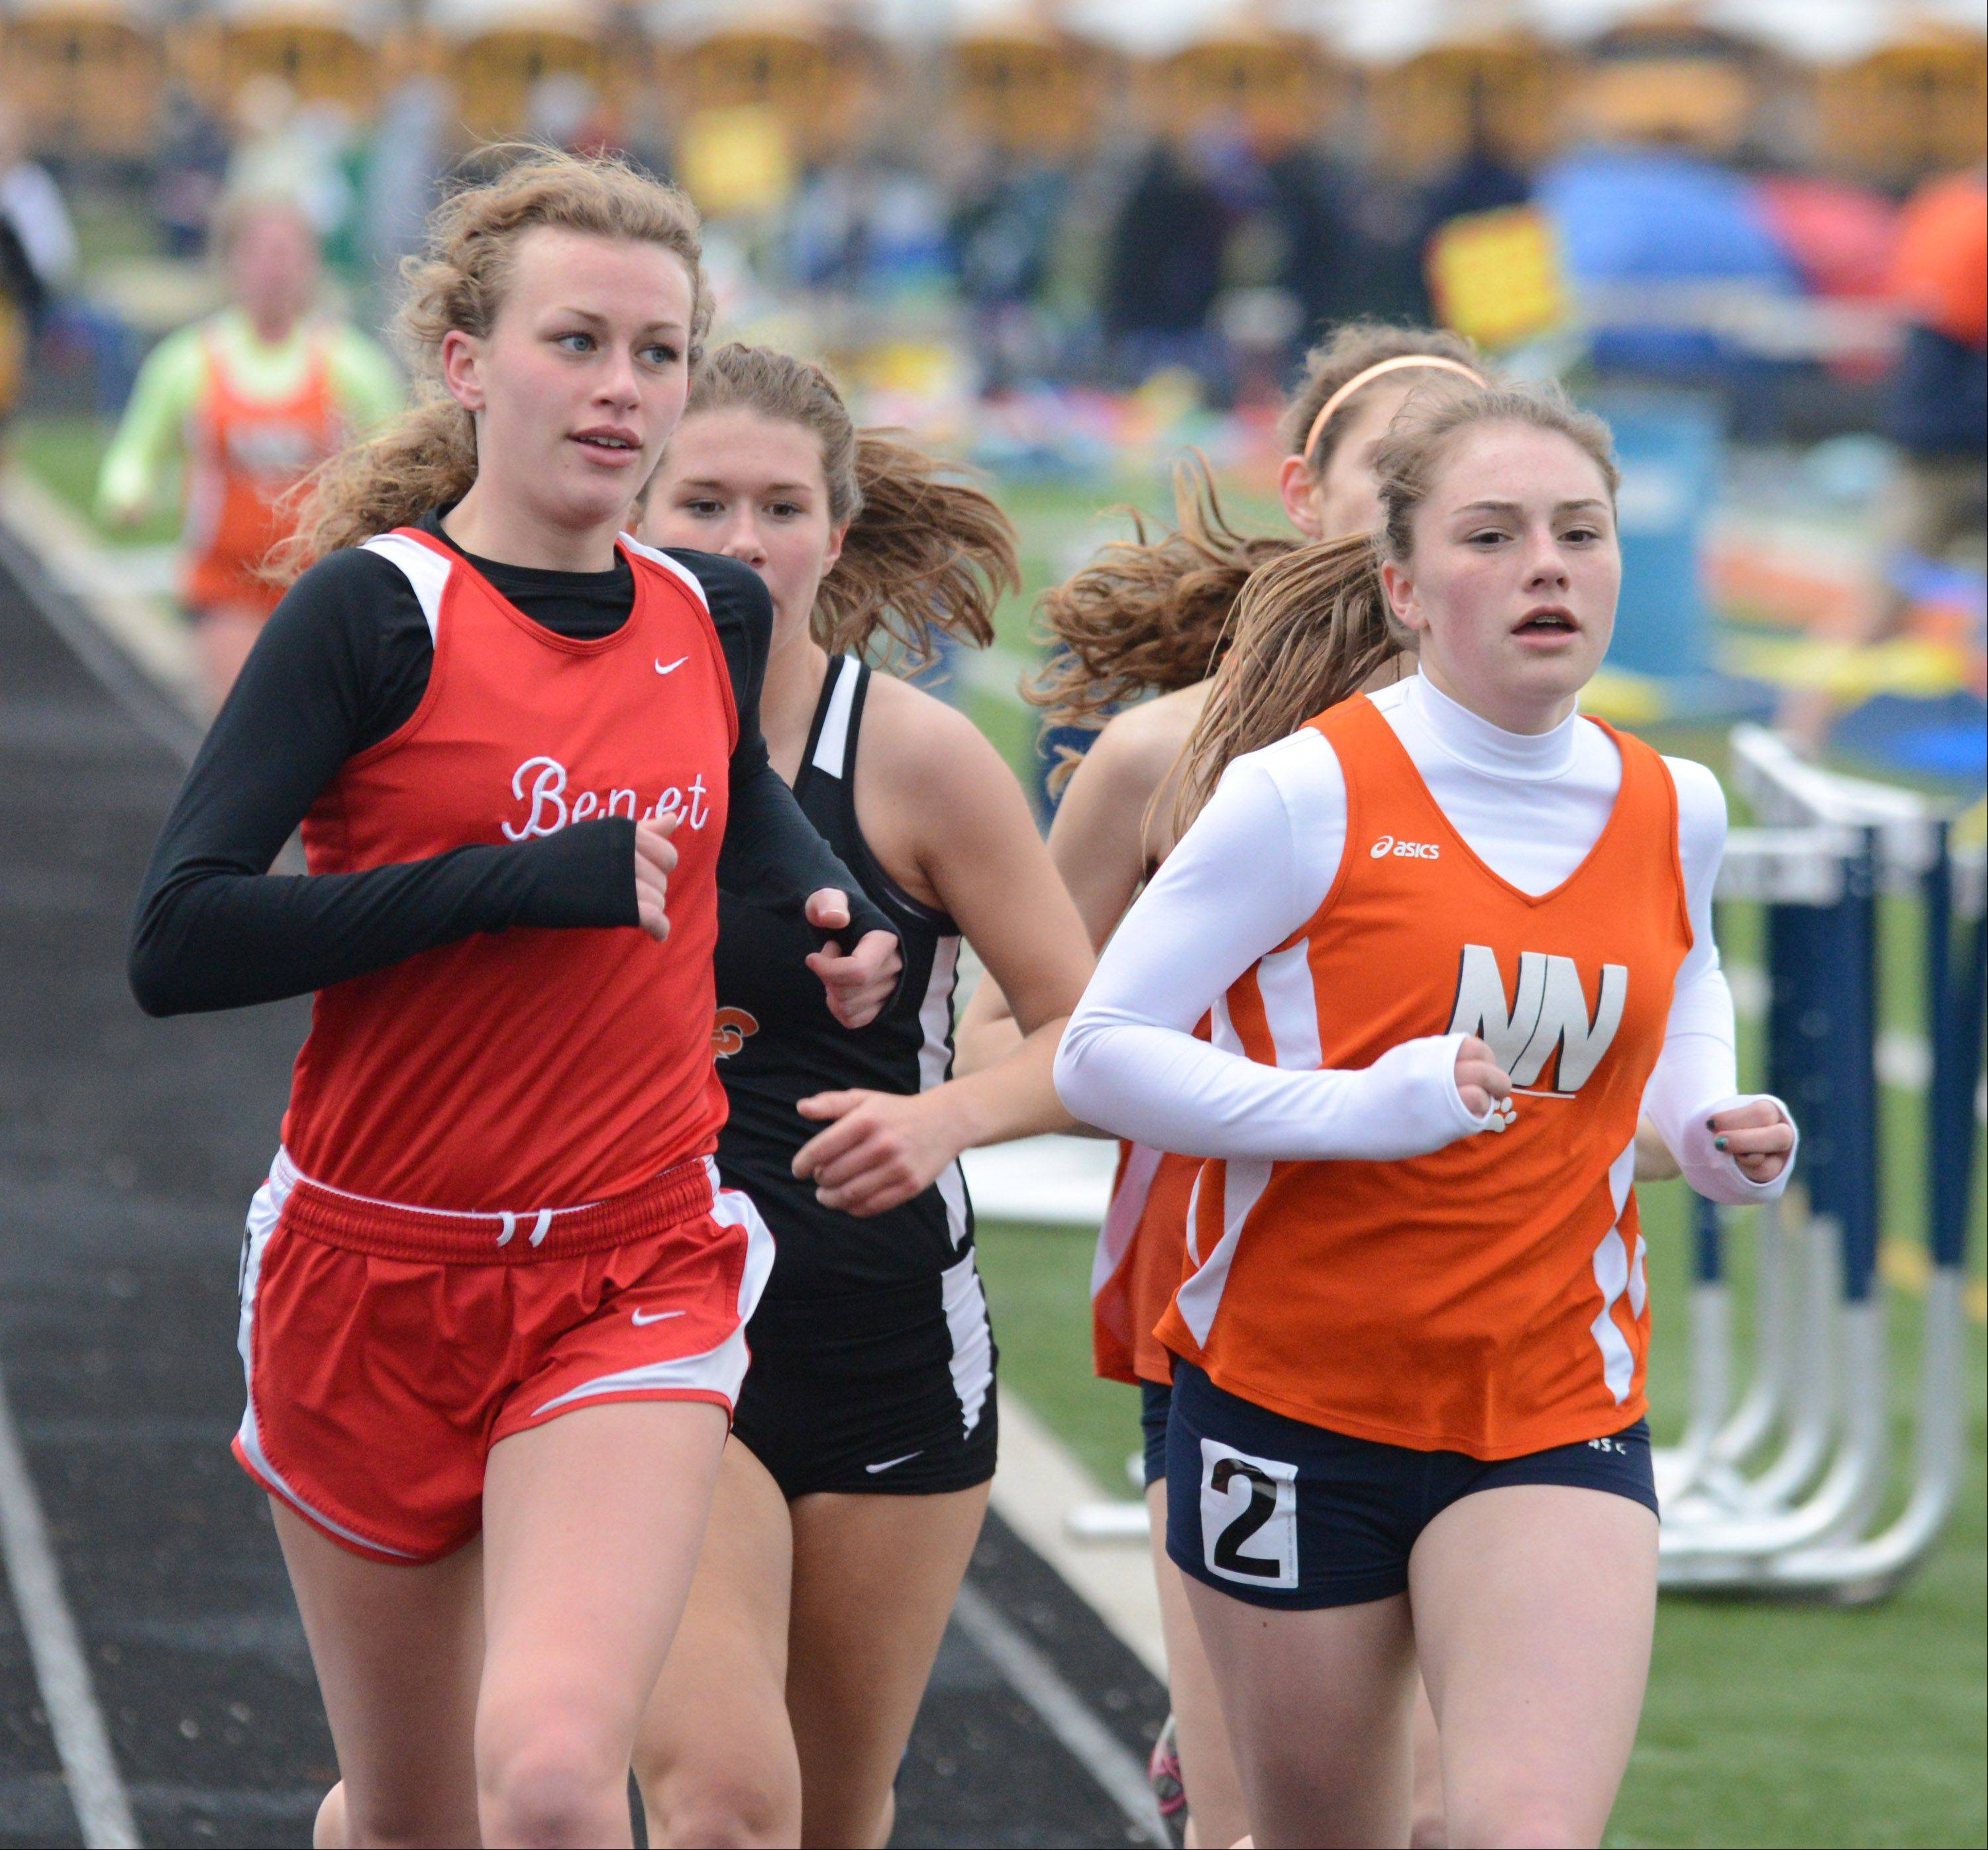 Audrey Blazek of Benet and Emily Hamilton of Napervile North round the corner during the 3,200-meter run at the Gus Scott track meet at Naperville North on Friday.